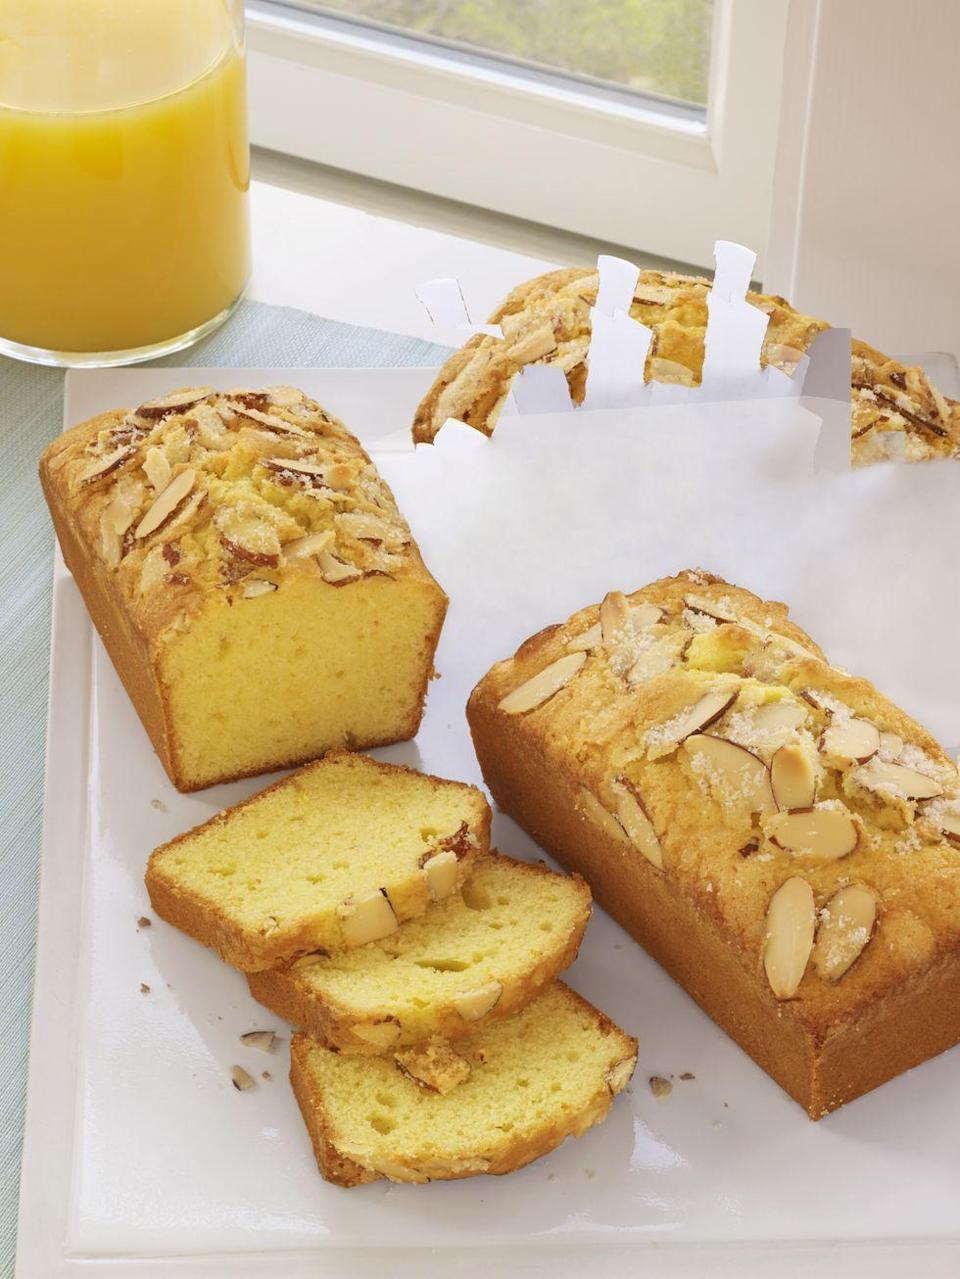 """<p>This olive oil cake can be stored at room temp for up to three days — but it's so tasty it'll never last that long. </p><p><strong><em>Get the recipe at <a href=""""https://www.delish.com/cooking/recipe-ideas/recipes/a36502/mini-olive-oil-almond-cakes-recipe-wdy0415/"""" rel=""""nofollow noopener"""" target=""""_blank"""" data-ylk=""""slk:Delish"""" class=""""link rapid-noclick-resp"""">Delish</a>. </em></strong></p>"""